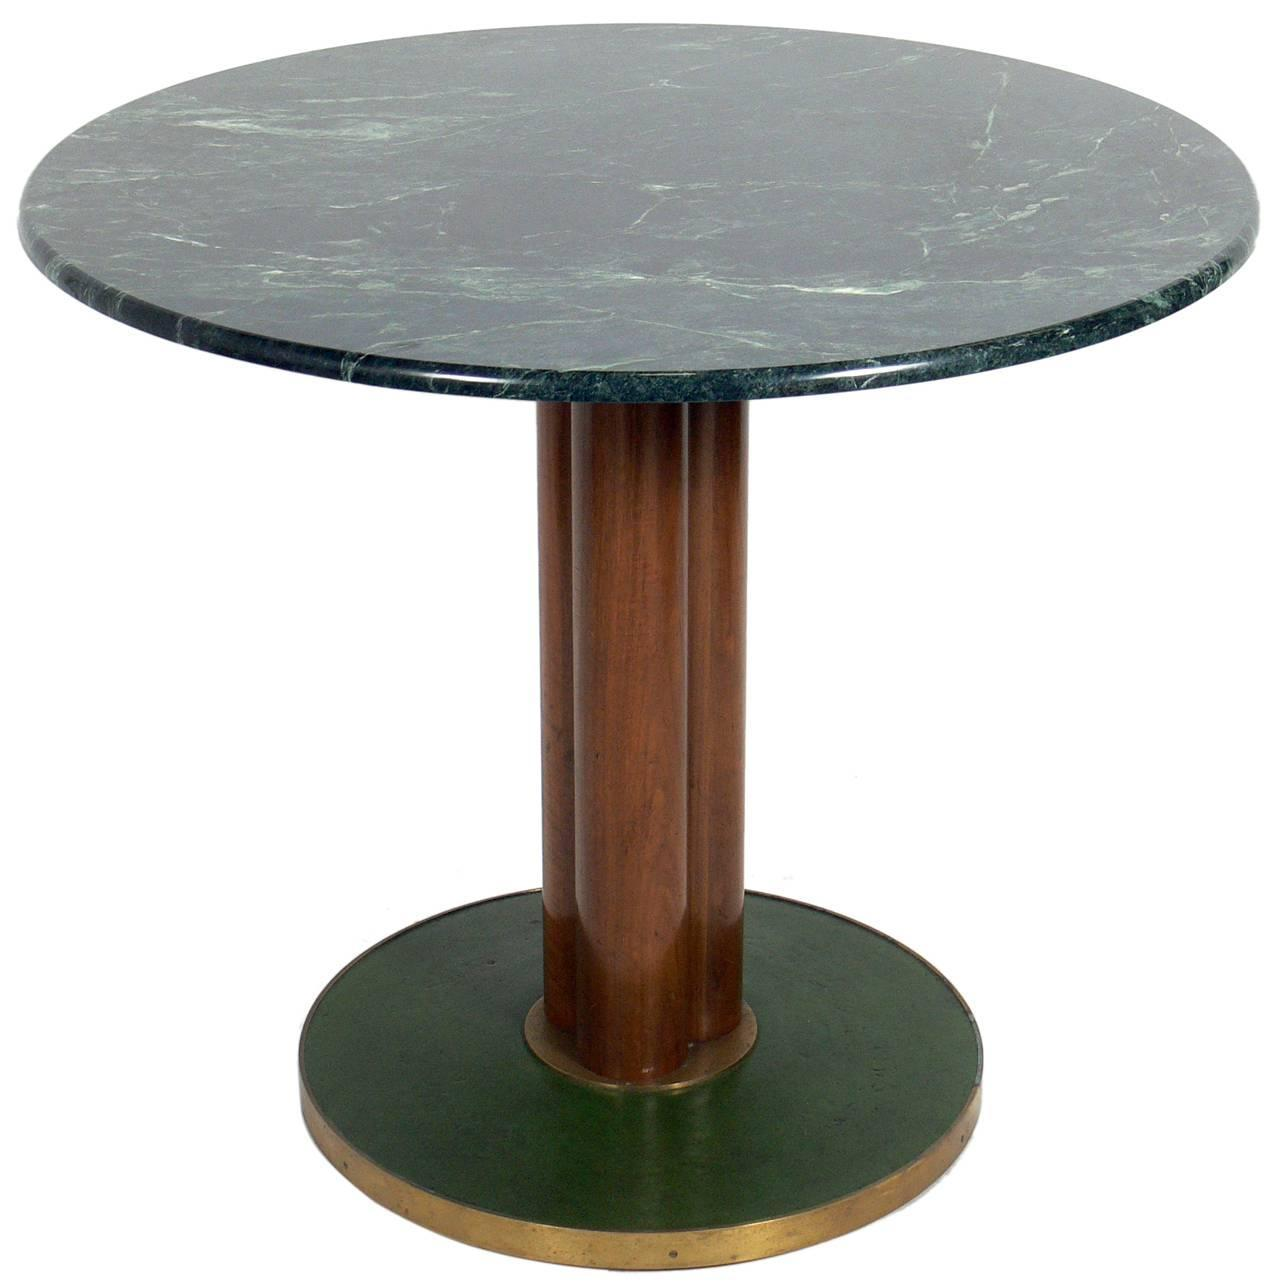 Dunbar marble top table for sale at 1stdibs for Marble table tops for sale